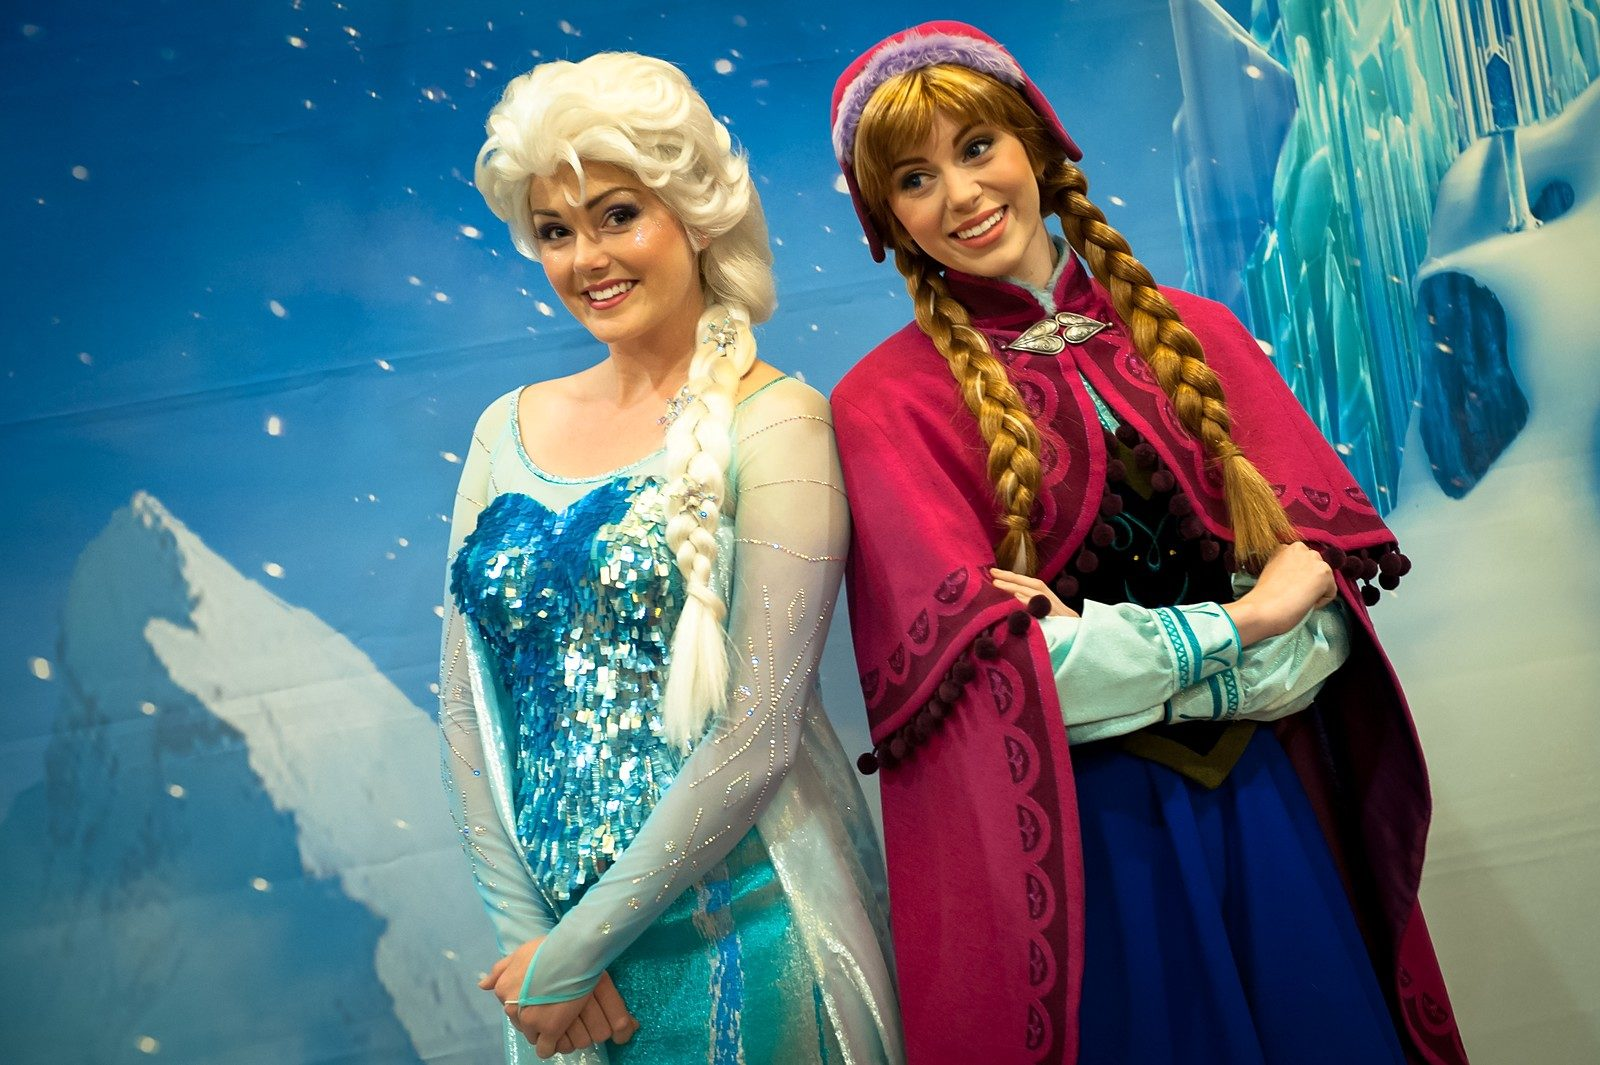 Elsa and Anna Disney Frozen character actresses